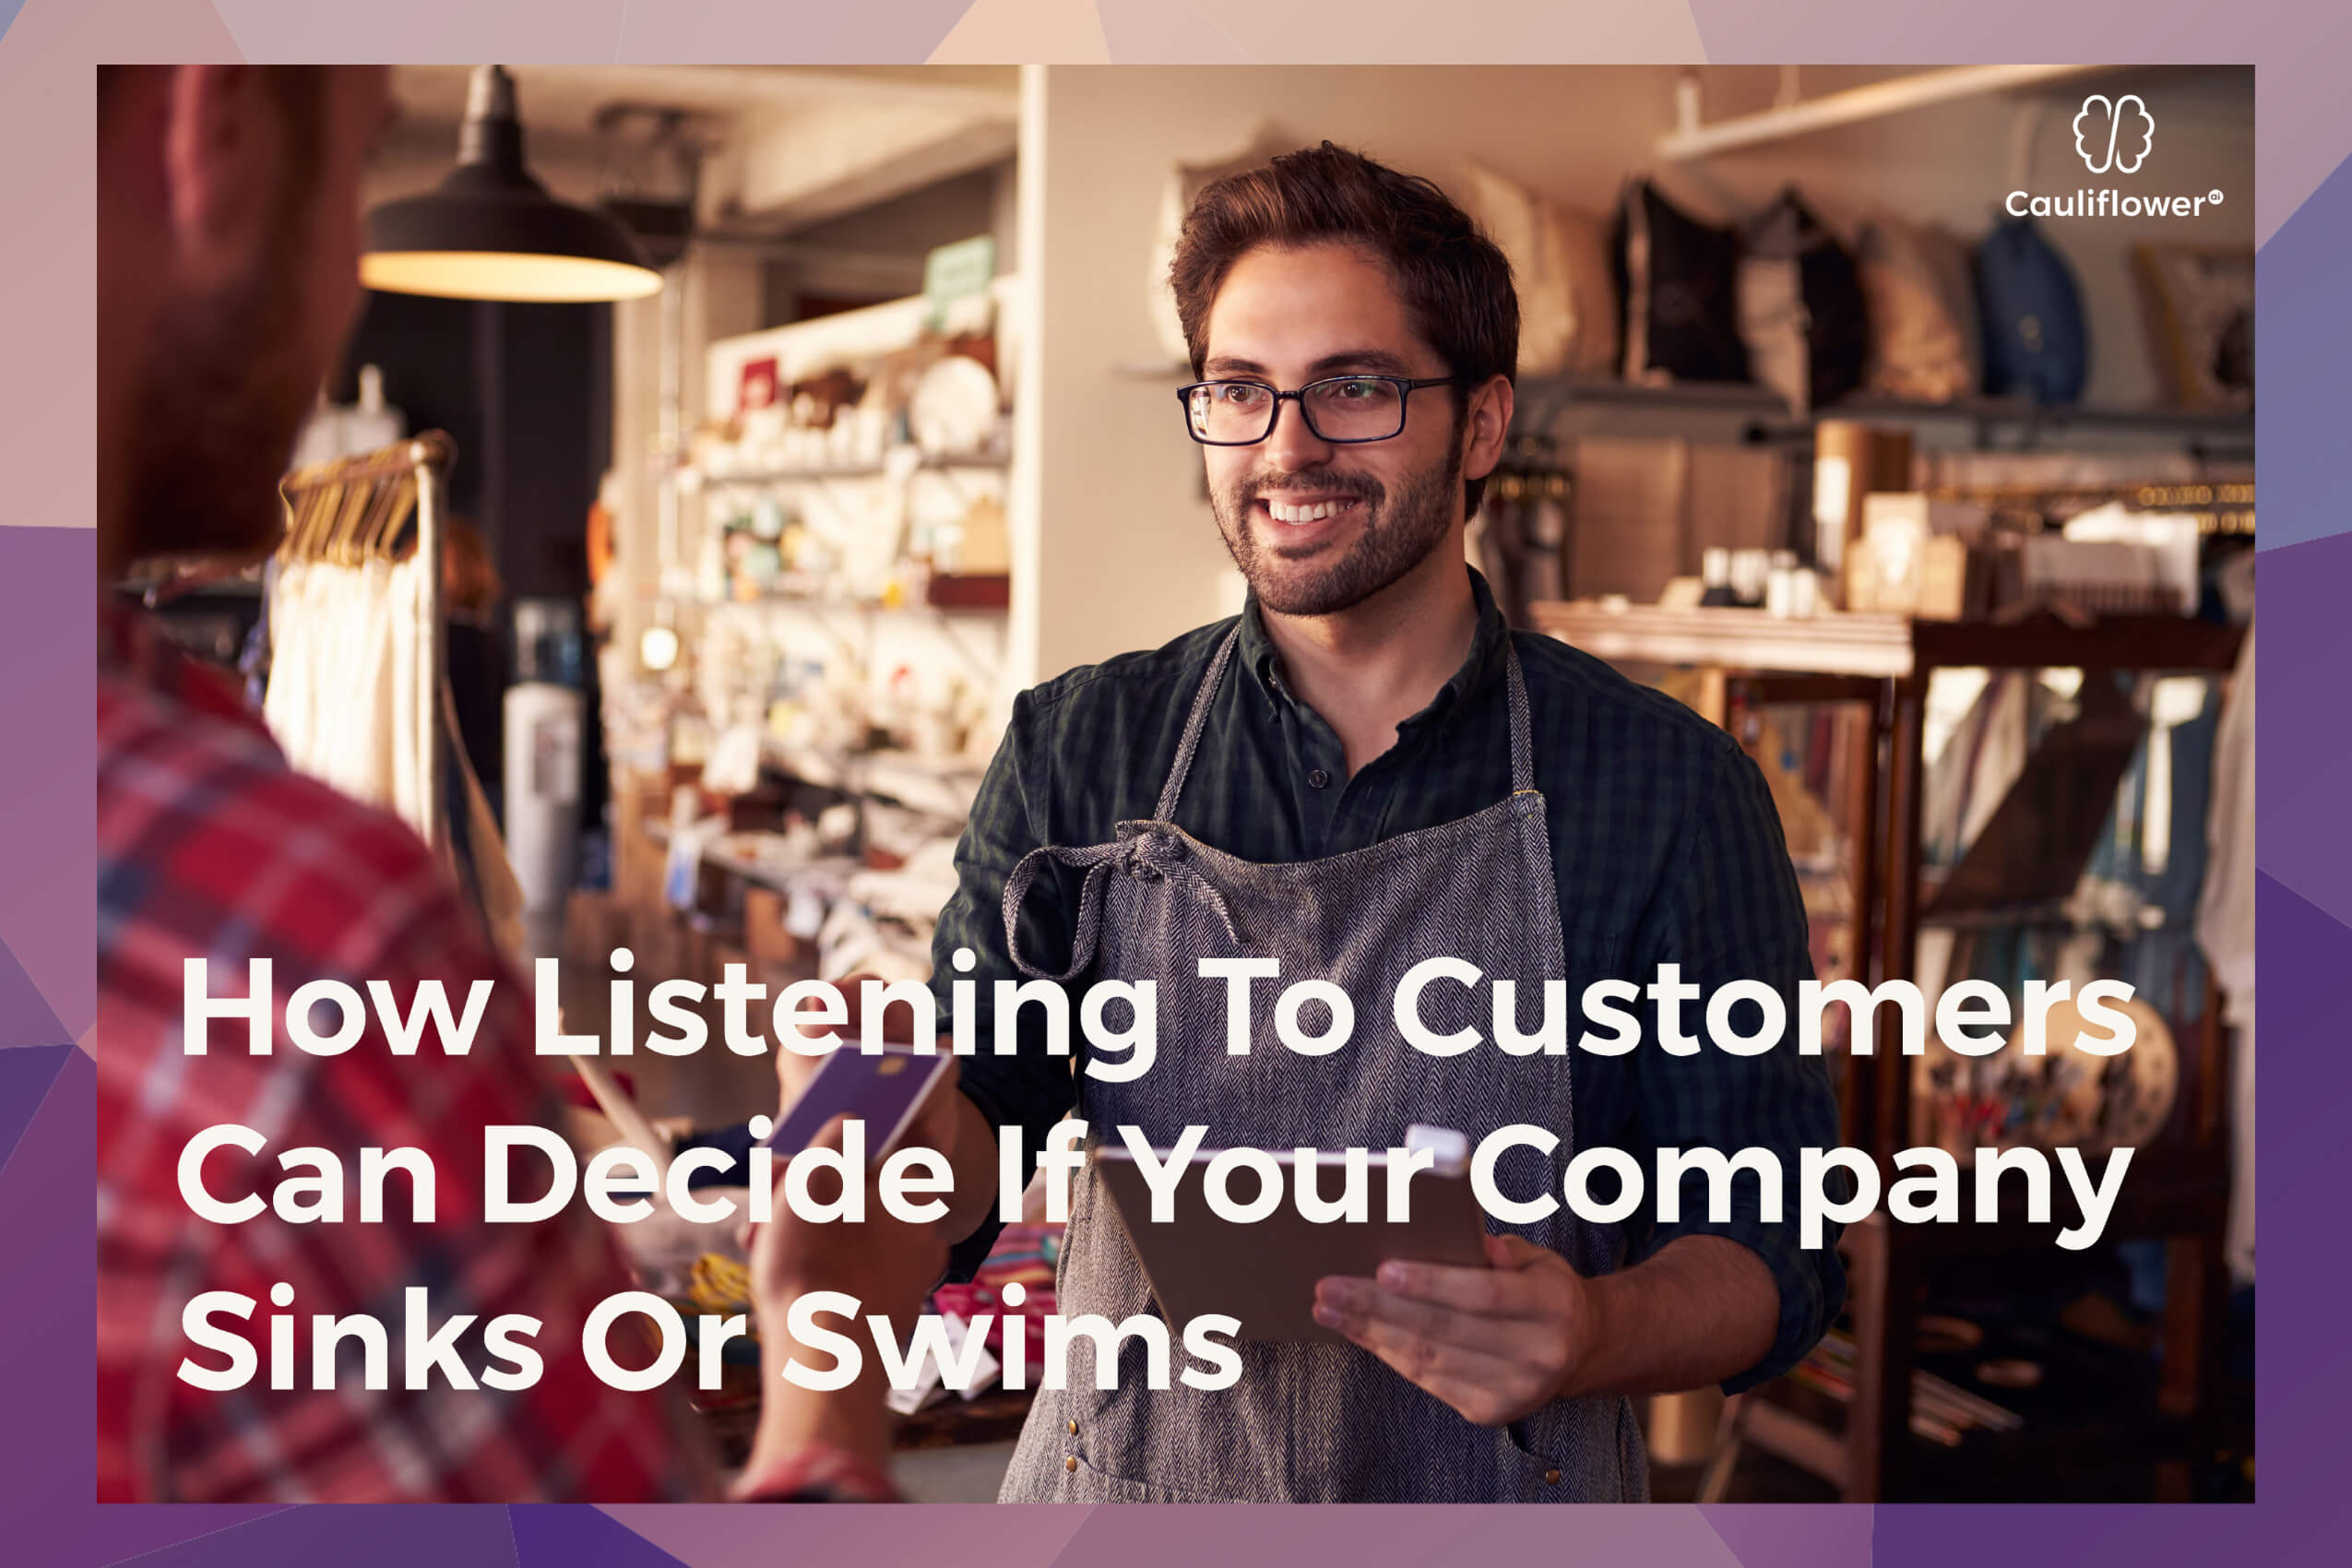 How Listening To Customers Can Decide If Your Company Sinks Or Swims